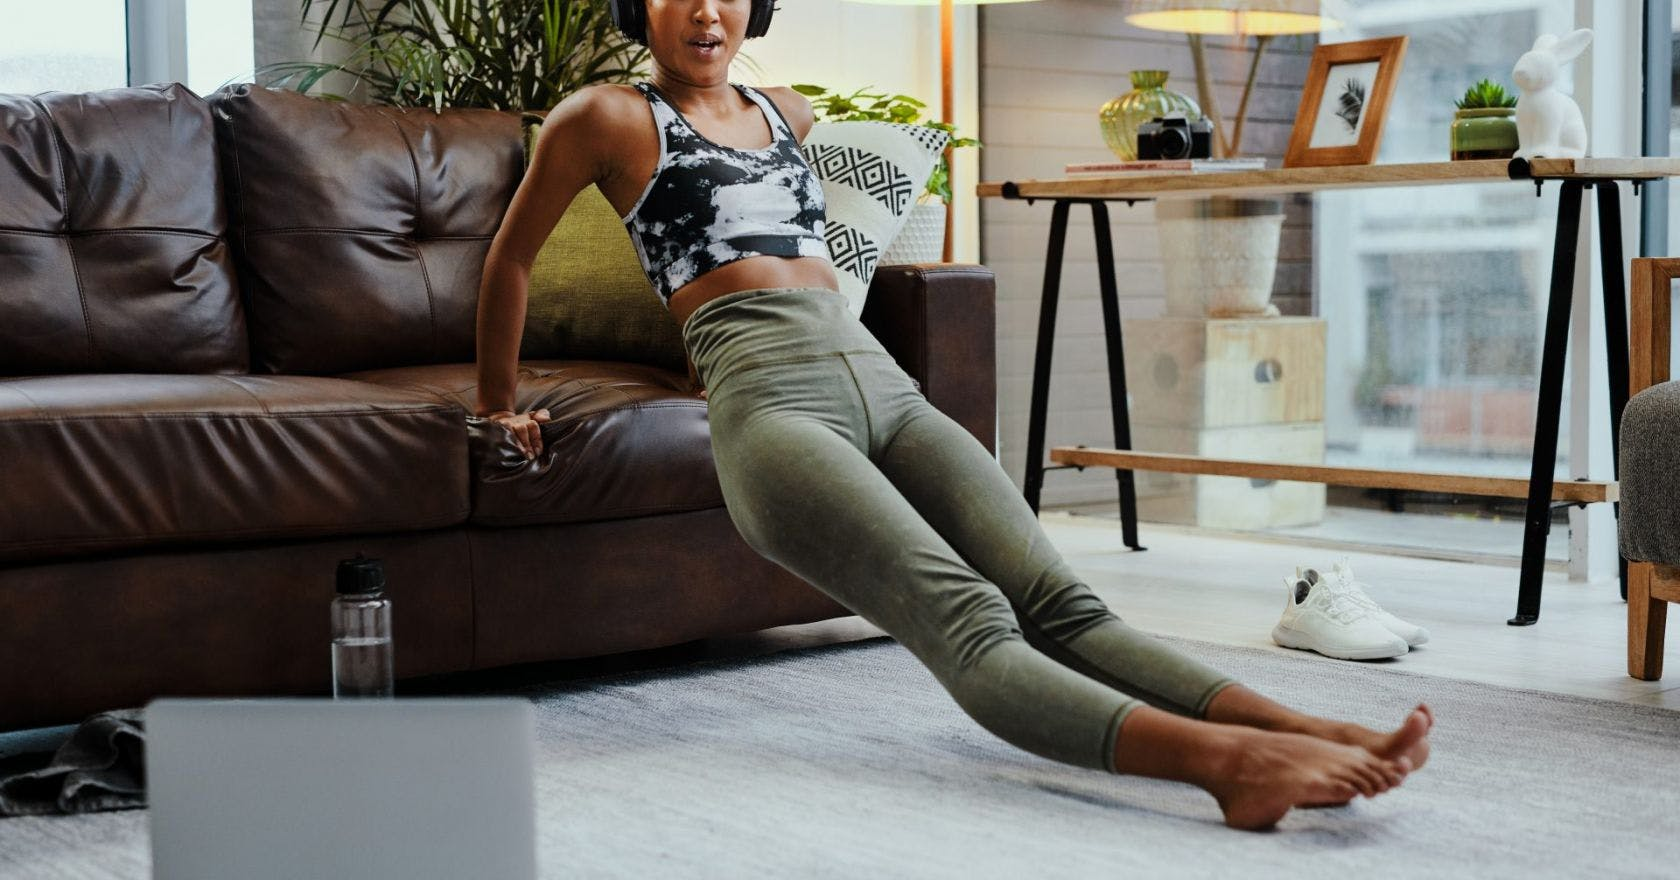 How to make home workouts as challenging as your gym training